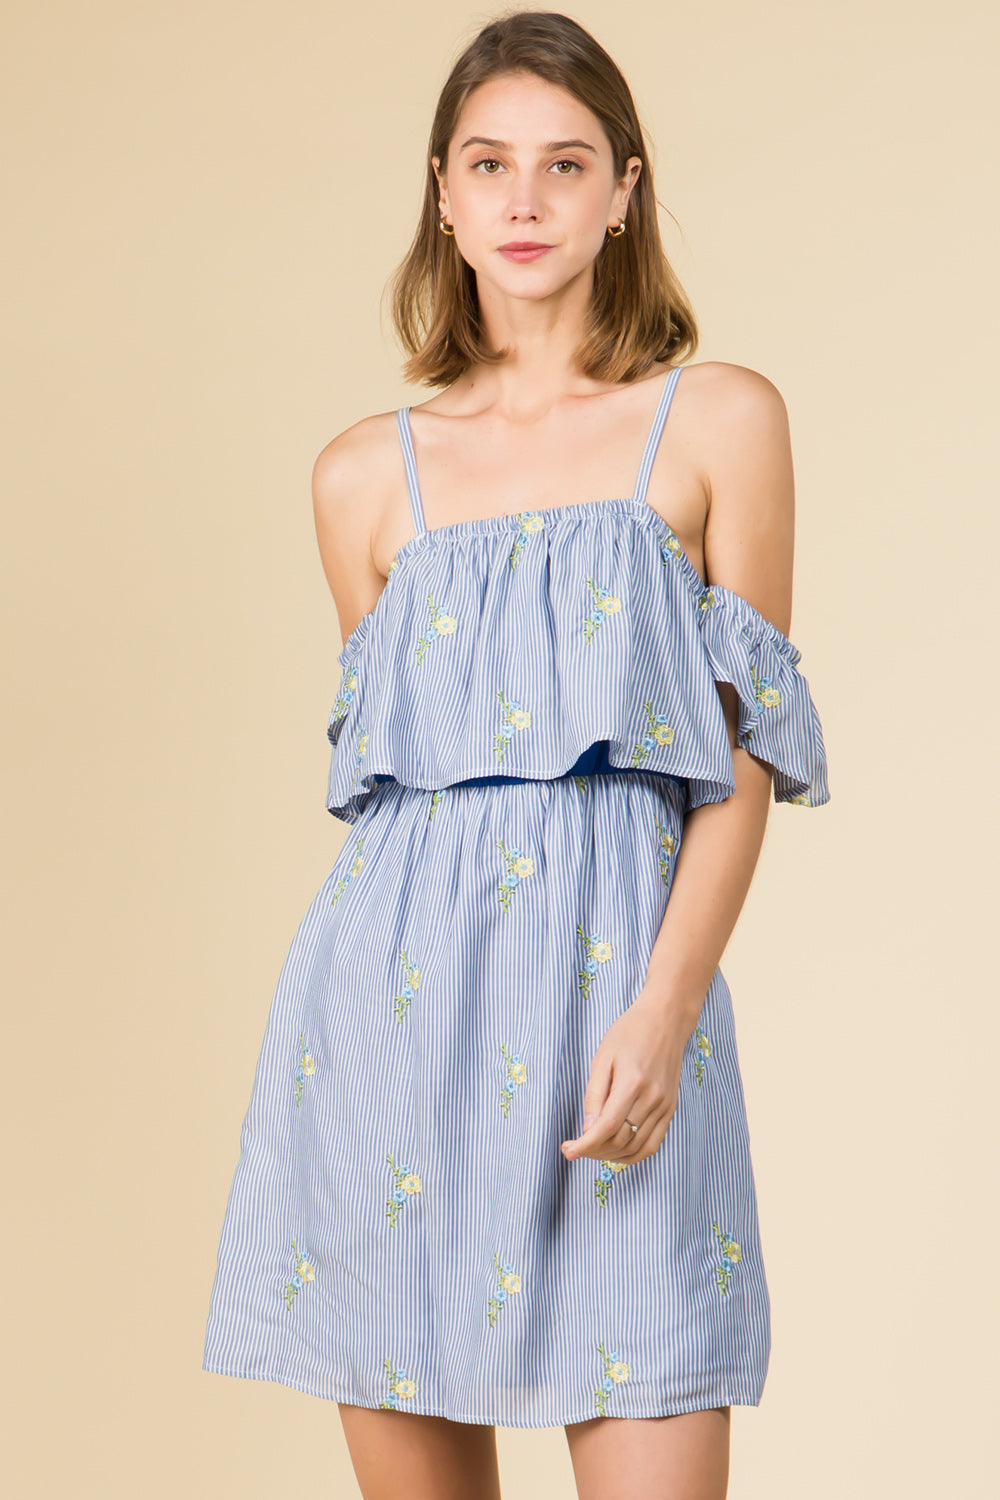 EMBROIDERED STRIPE BLUE FLORAL OFF THE SHOULDER MINI DRESS